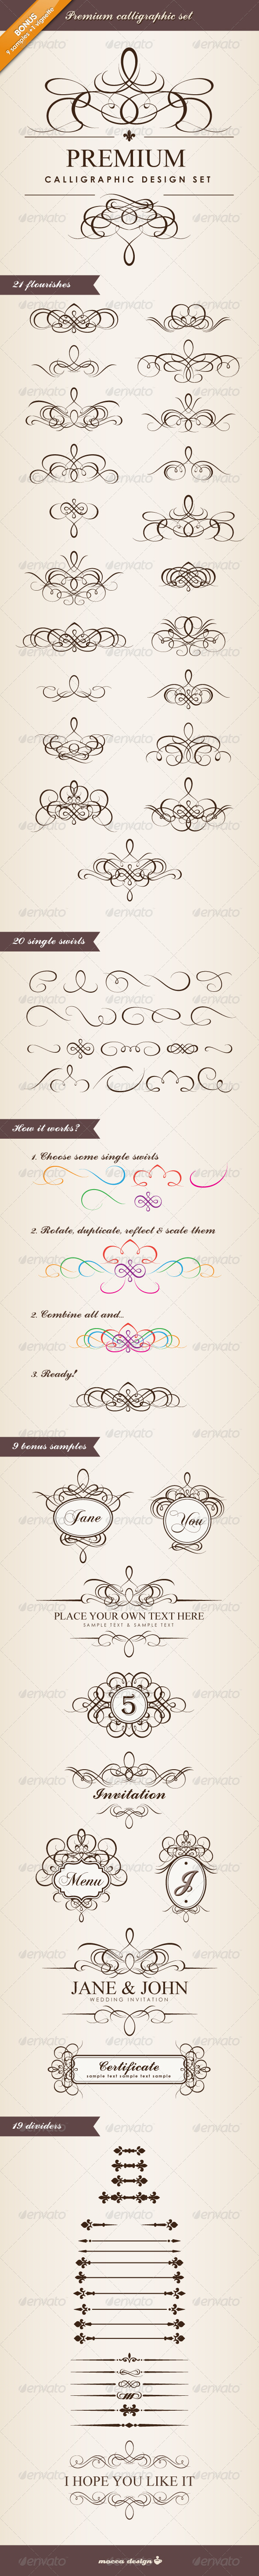 Graphicriver | Premium Calligraphic Design Set Free Download free download Graphicriver | Premium Calligraphic Design Set Free Download nulled Graphicriver | Premium Calligraphic Design Set Free Download